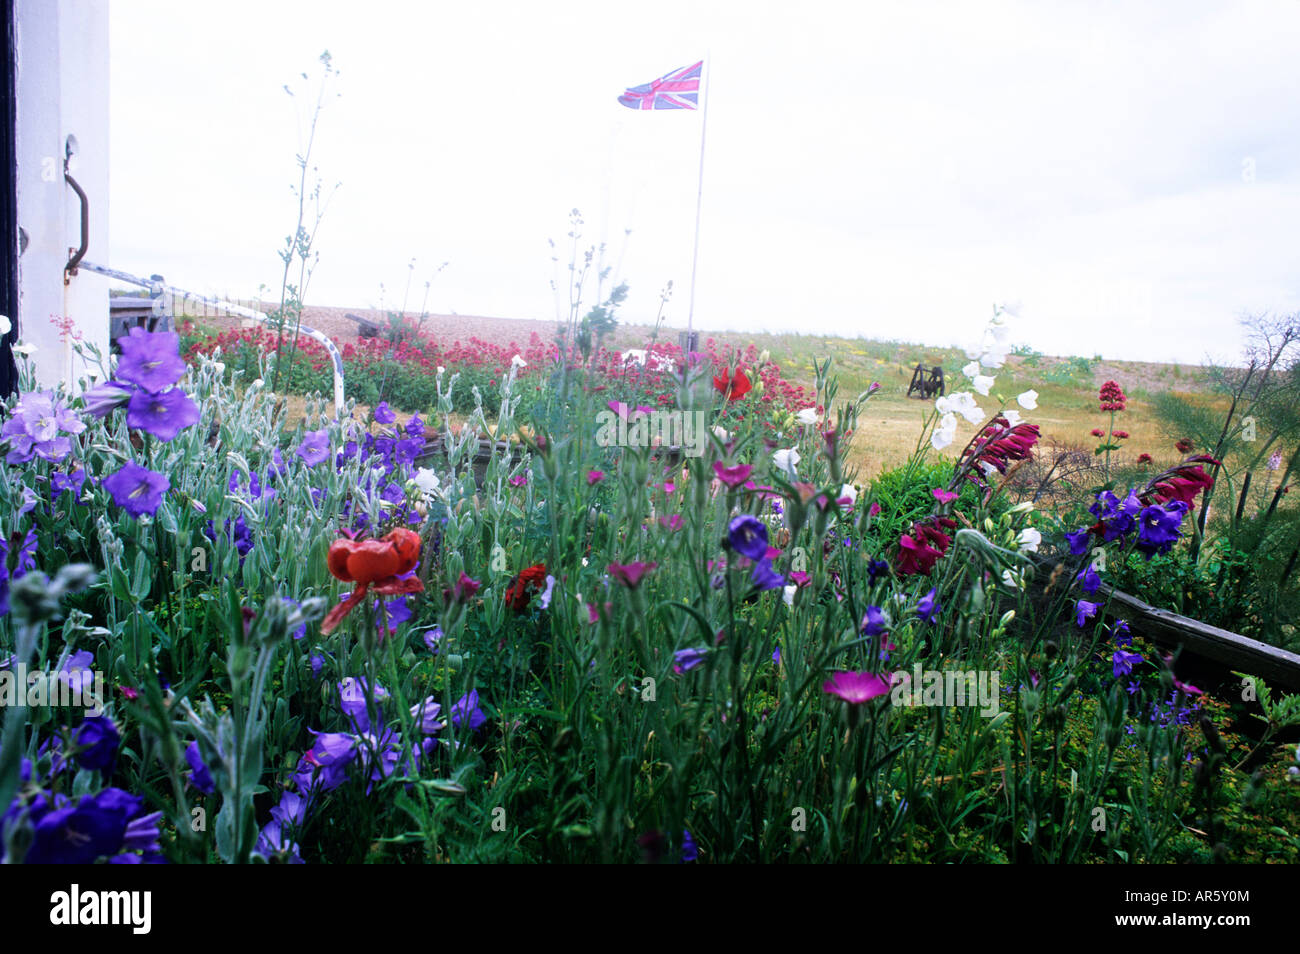 Red white blue flowers flag stock photos red white blue flowers seaside beach garden red white blue flowers flag union jack british campanula poppies plants coast coastal dhlflorist Gallery